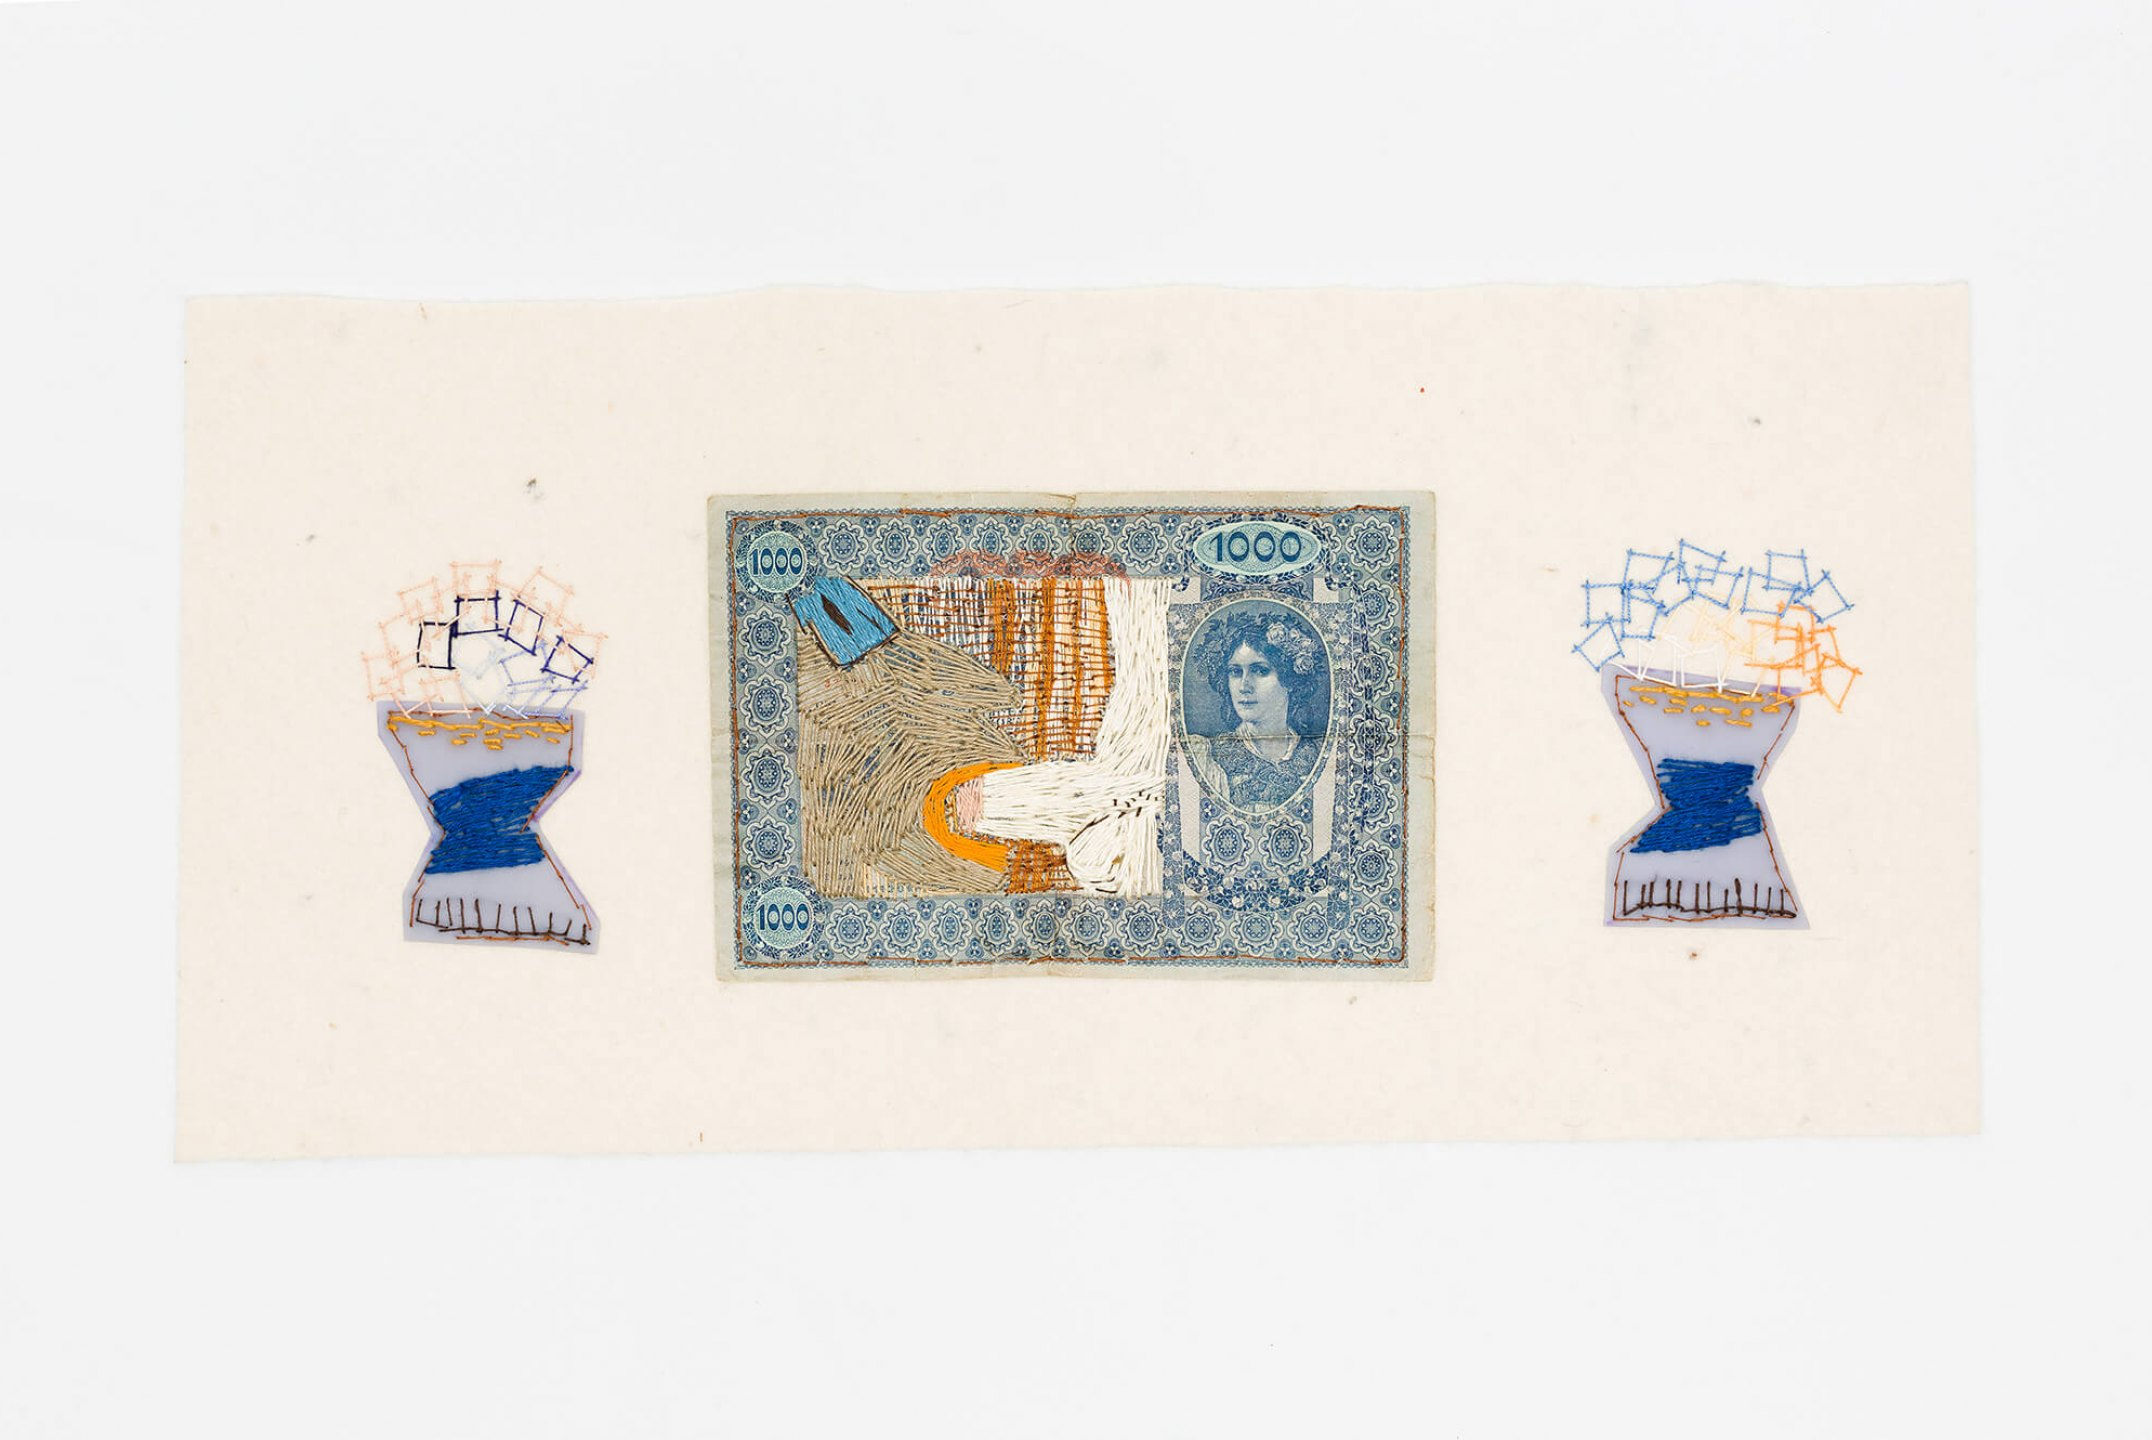 f. marquespeteado, <em>Mil boquetes 01, from Wedgwood erótica series,</em>2008/2009, old banknote hand embroidery with linen thread on industrial felt, 22 × 48 cm - Mendes Wood DM